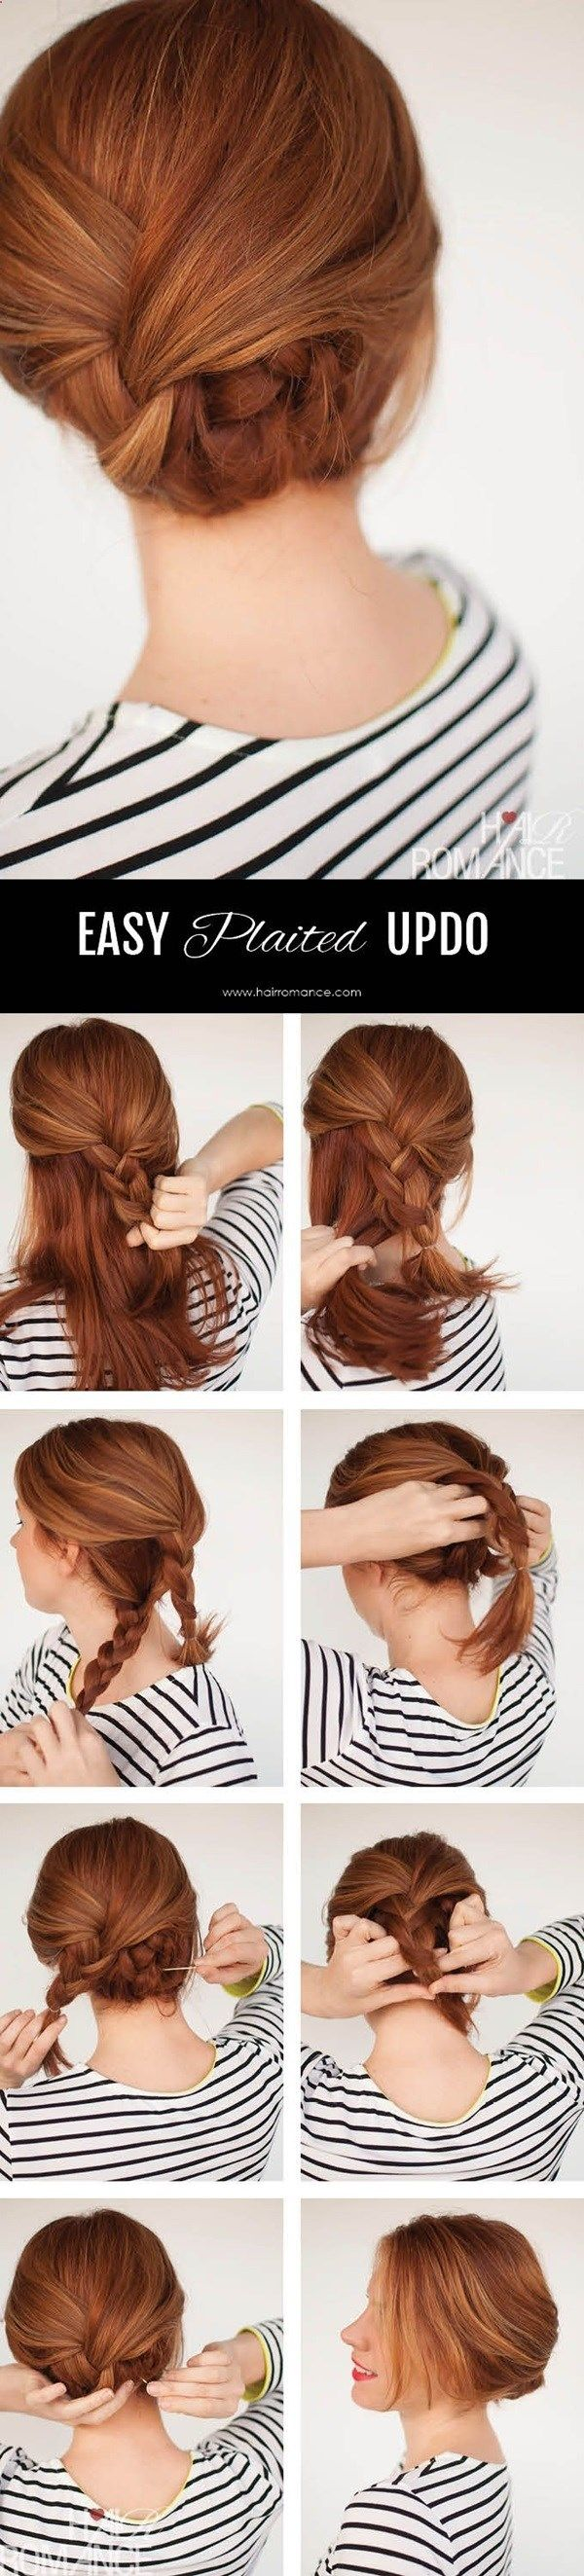 best peinados images on pinterest make up hairstyles and braids